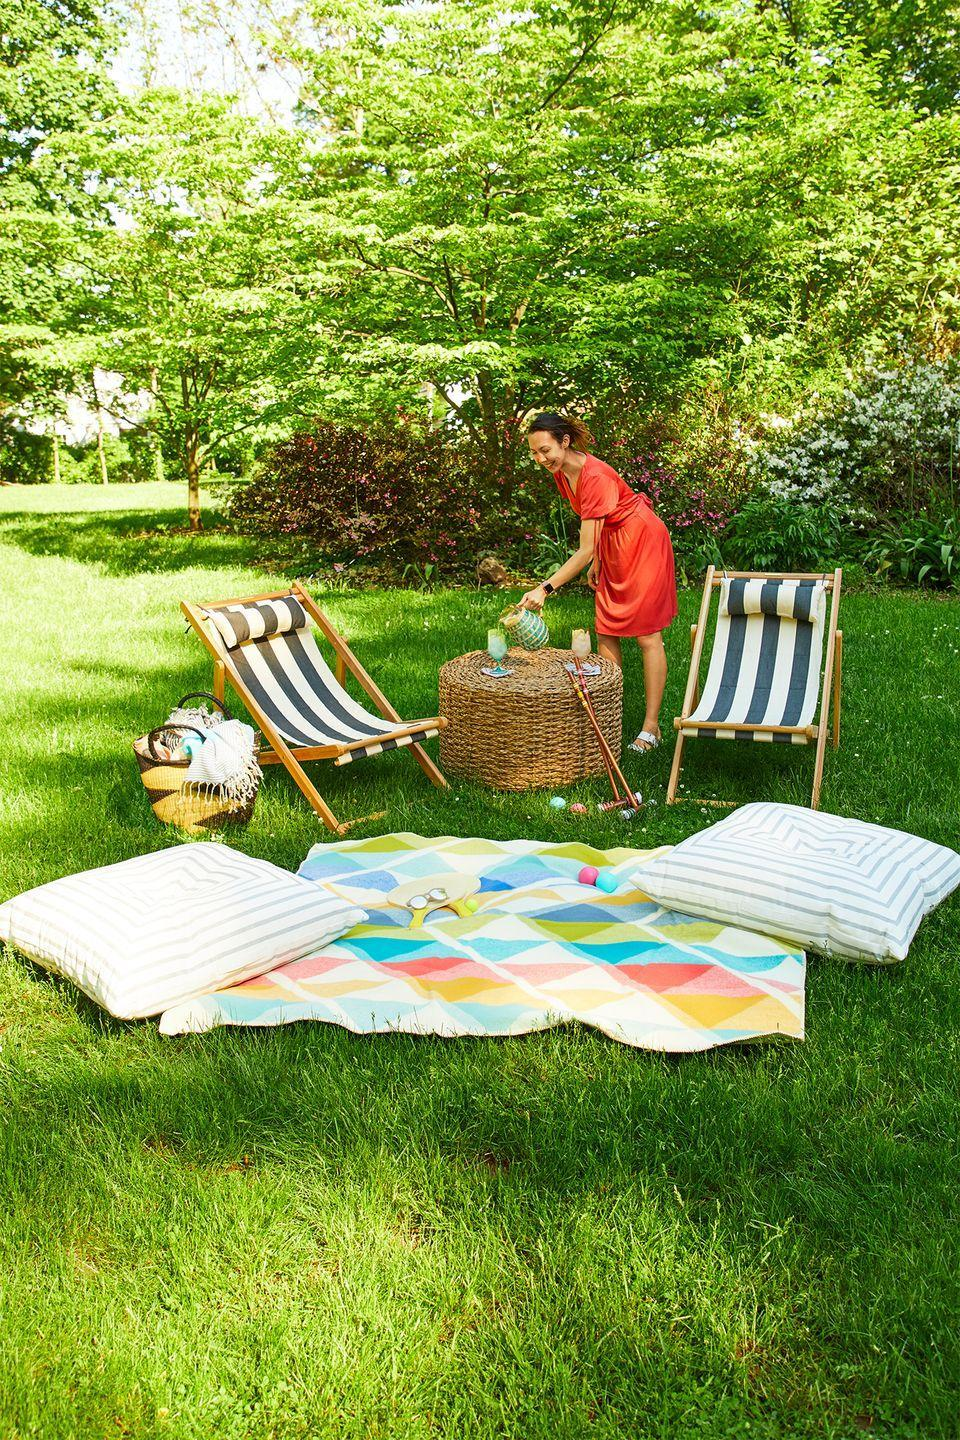 """<p>Since lawn furniture may be too bulky to suit the size of your space, go for folding chairs that can be stored easily when they're not in use. For a warm and inviting vibe, throw an outdoor rug and floor pillows on the surrounding grass. </p><p><strong>RELATED: </strong><a href=""""https://www.goodhousekeeping.com/home-products/g27257593/best-outdoor-furniture/"""" rel=""""nofollow noopener"""" target=""""_blank"""" data-ylk=""""slk:The Best Outdoor Furniture You Can Buy"""" class=""""link rapid-noclick-resp"""">The Best Outdoor Furniture You Can Buy </a></p>"""